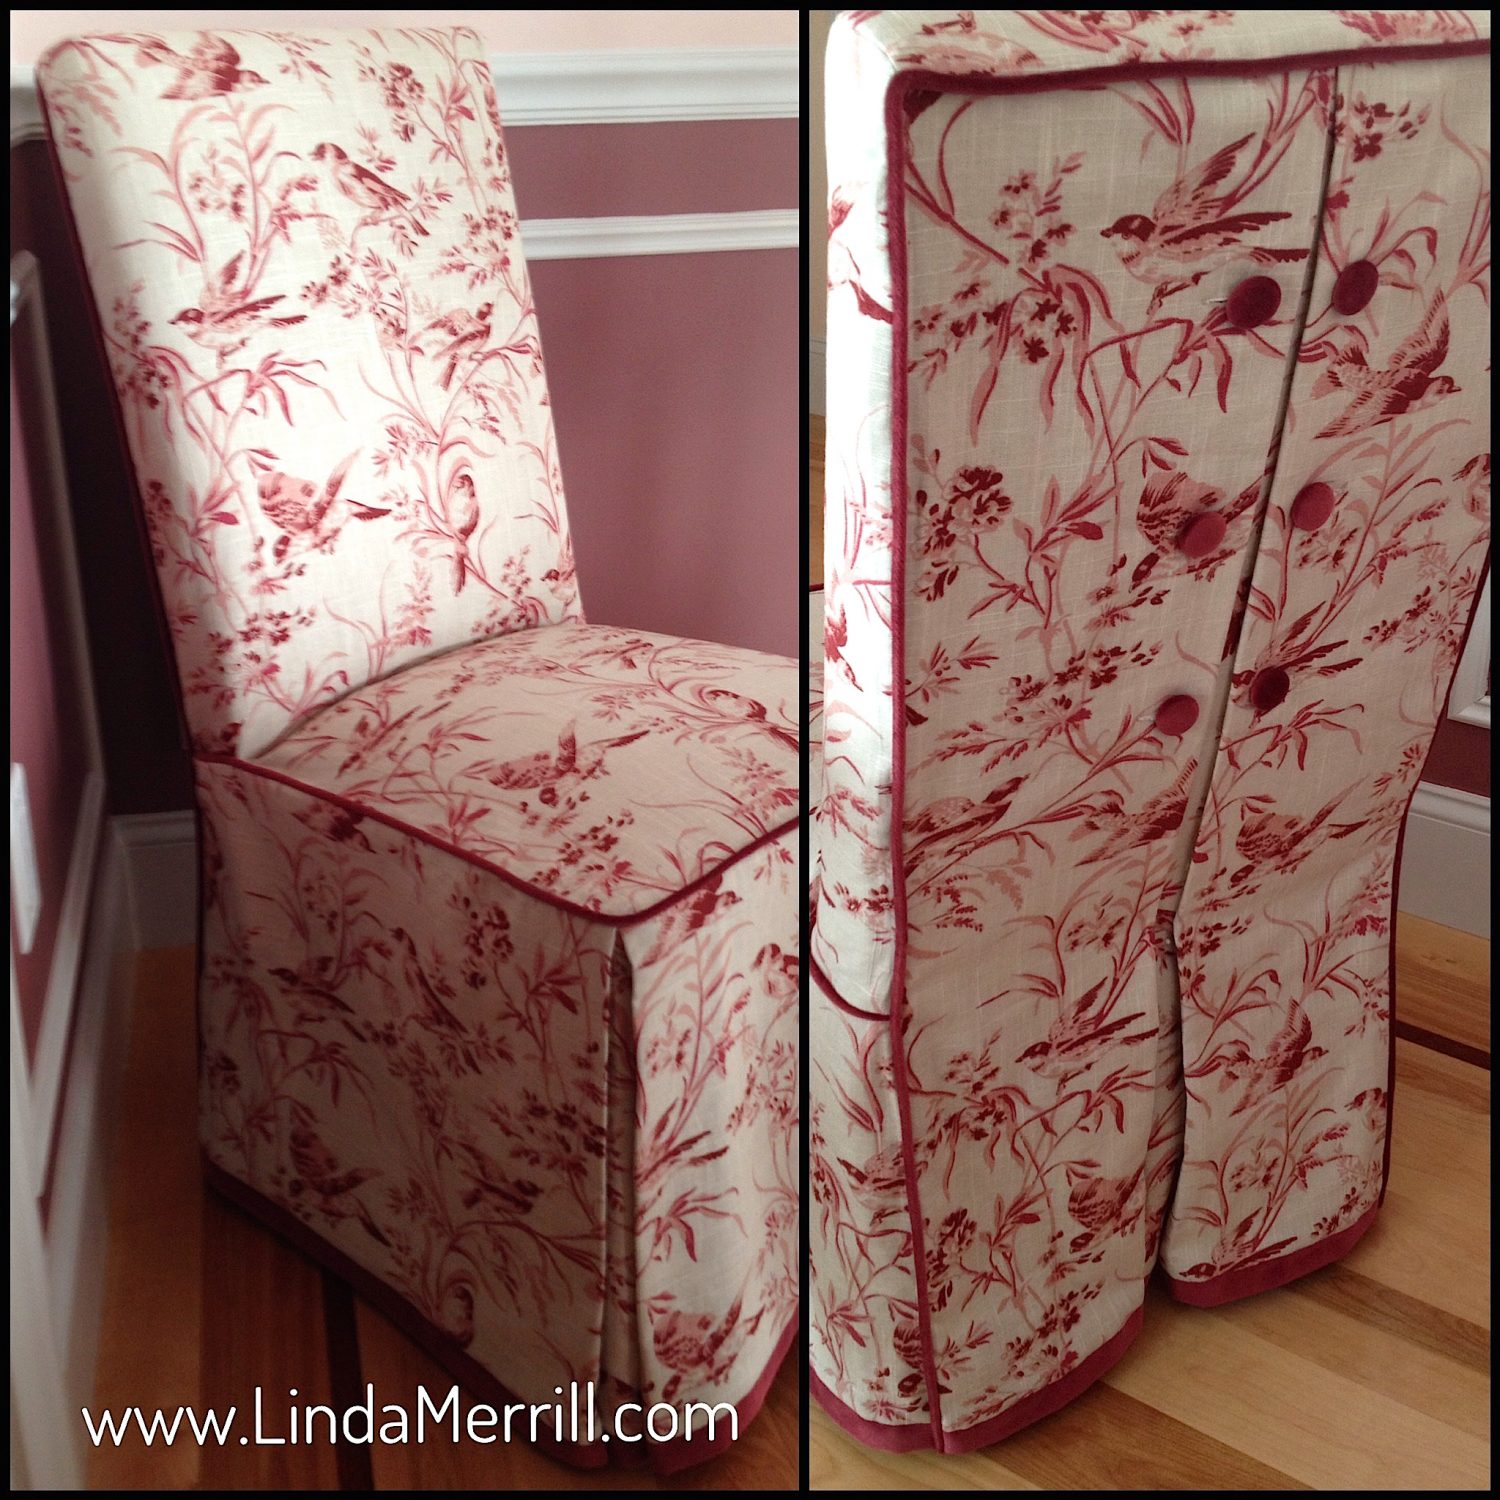 Linda Merrill design Norwell MA 02060 floral red and white chair dressmaker details upholstery